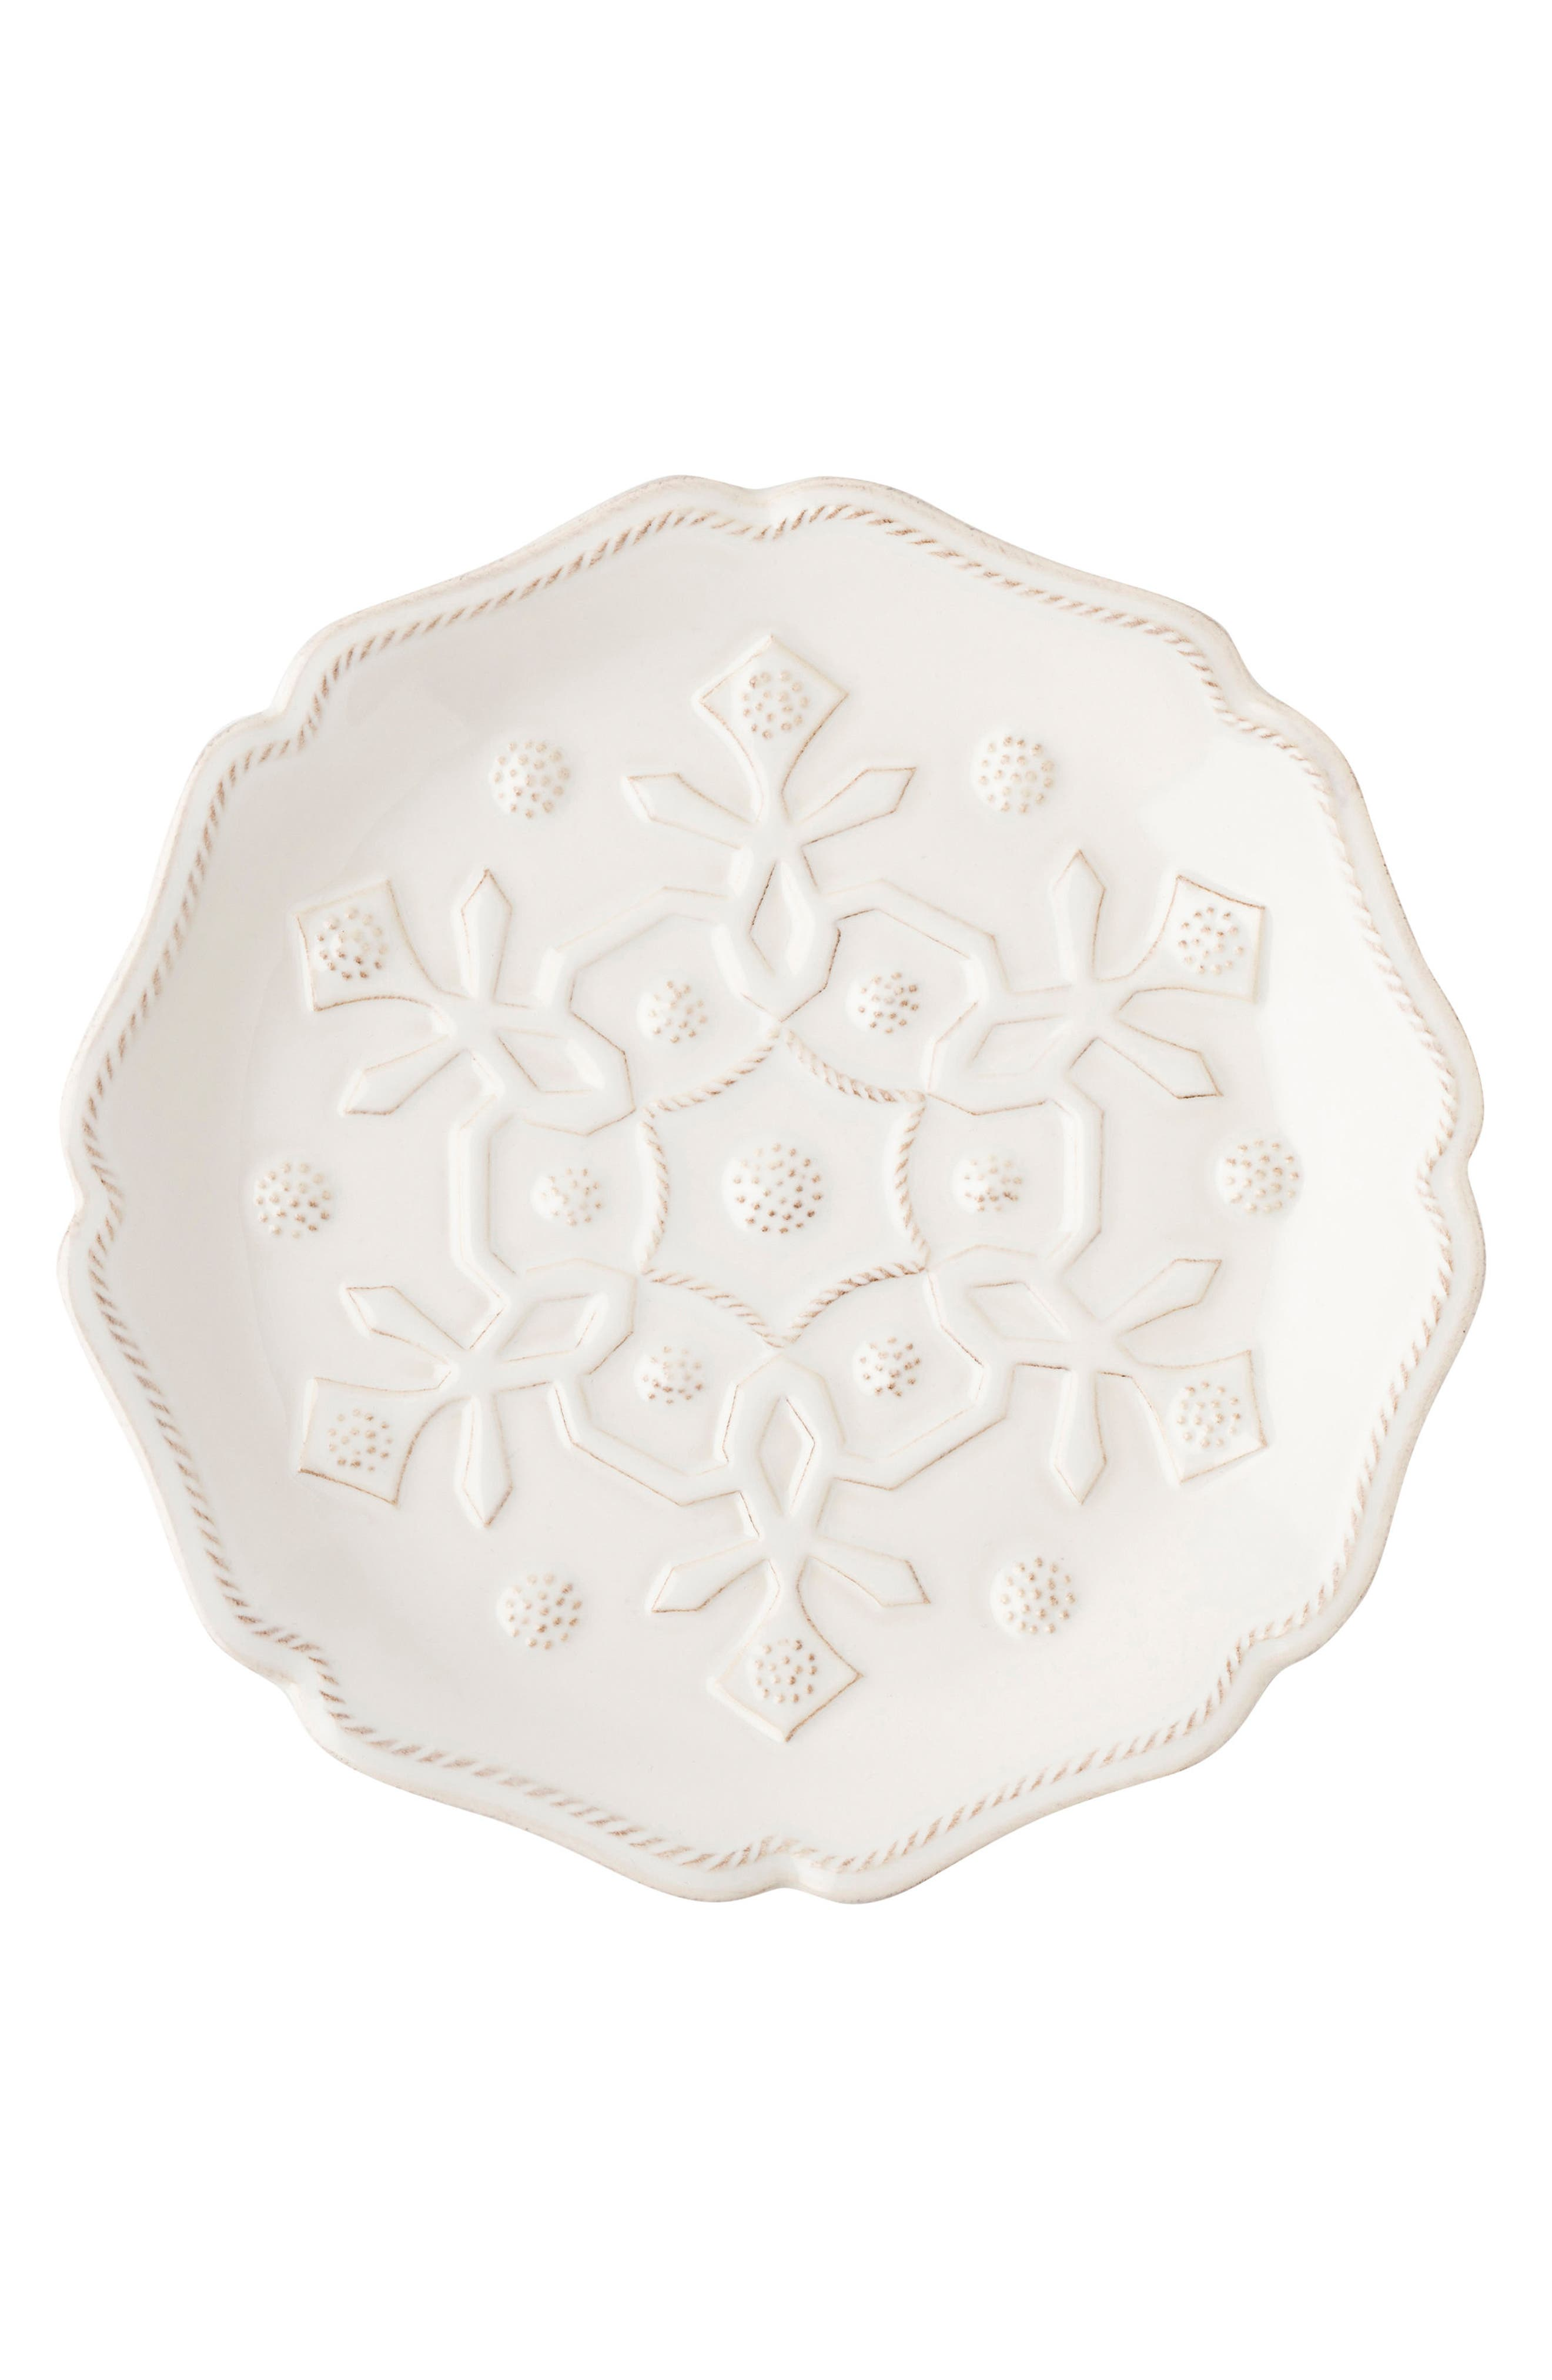 Snowfall Whitewash Set of 4 Ceramic Tidbit Plates,                             Alternate thumbnail 3, color,                             100